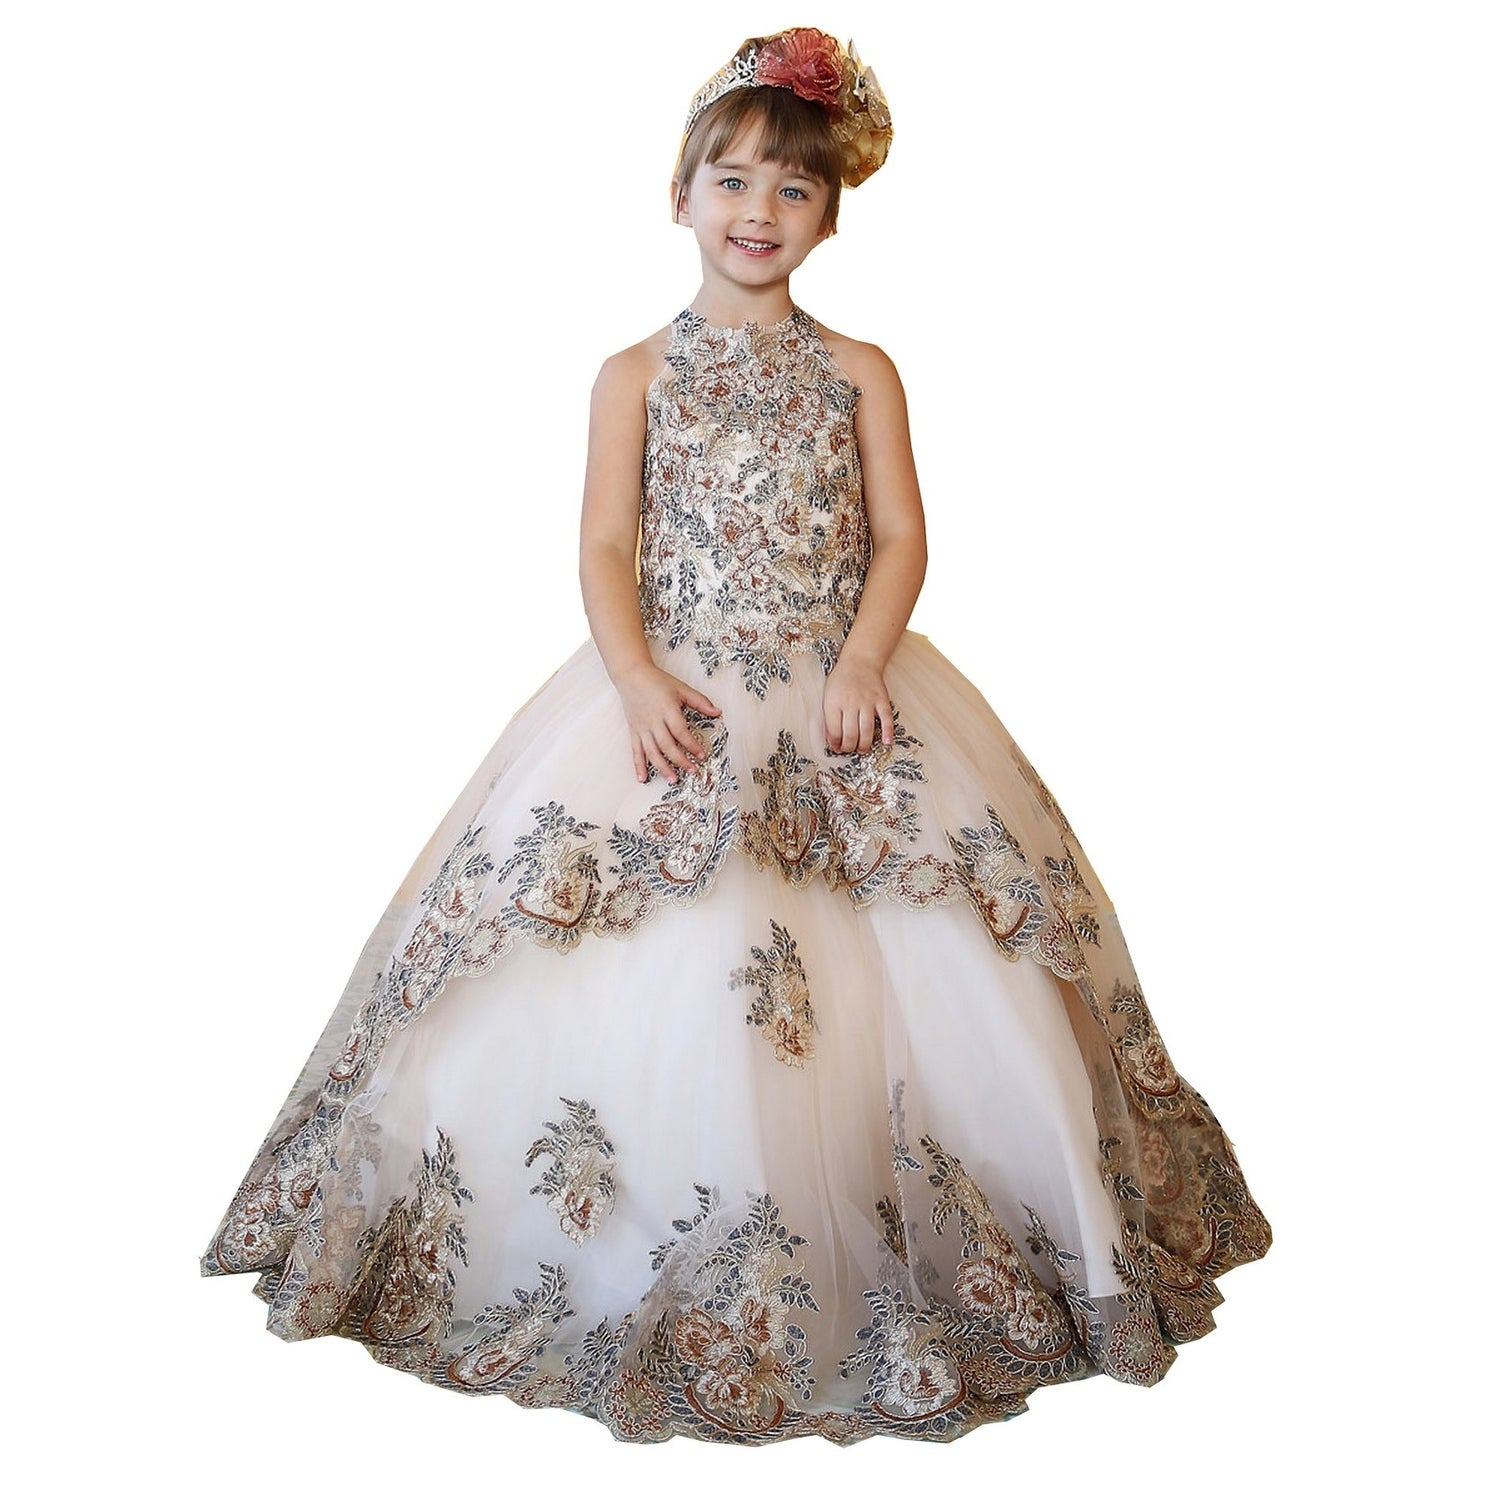 Calla Collection Little Girls Champagne Floral Lace Flower Girl Dress 2T-6X